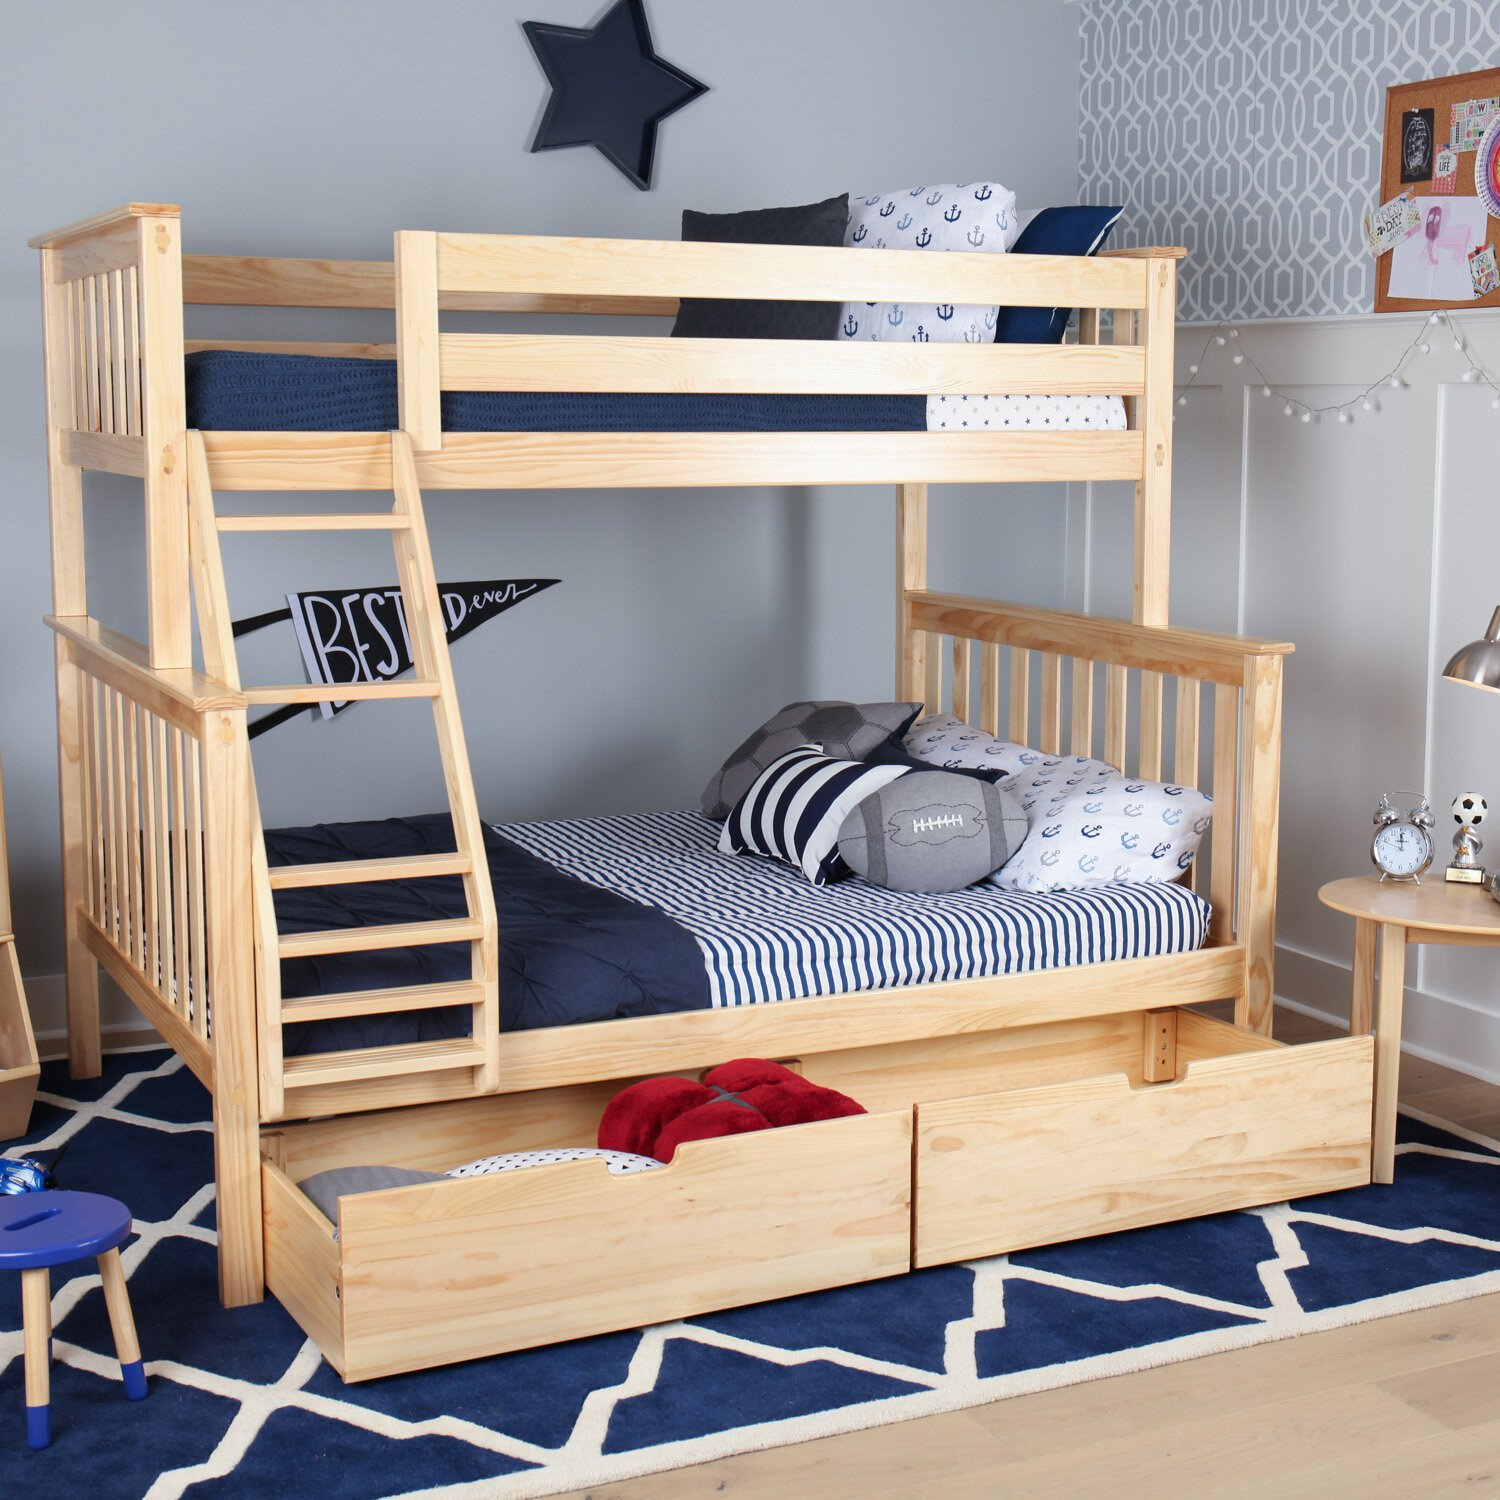 Kids Bunk Bed Bedroom Set Unique Borgen Bunk Bed with Drawers